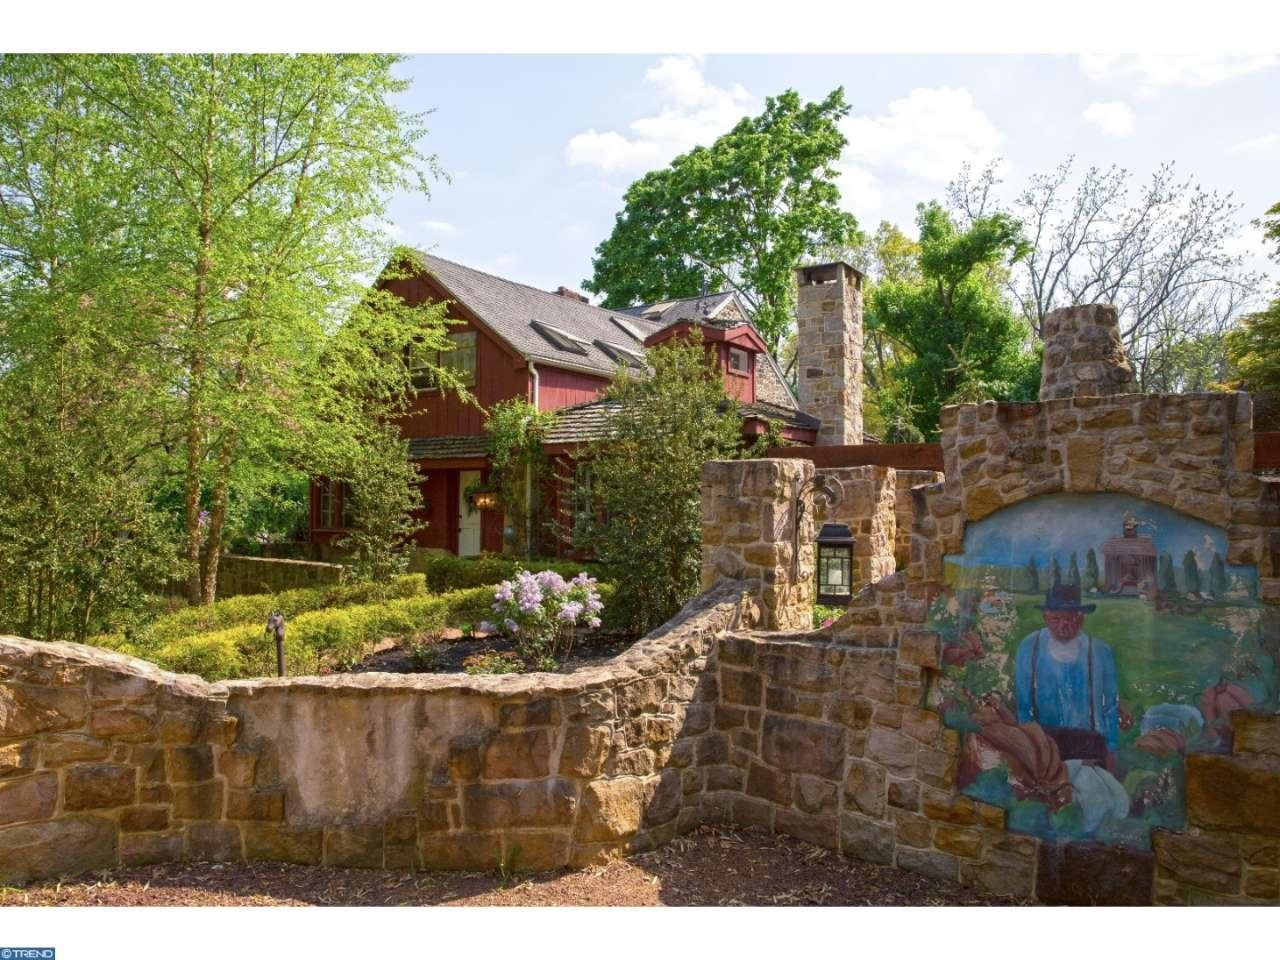 The Leap Year Barn Storybook house 115 Arrons Ave Doylestown PA for sale - magnifcient home